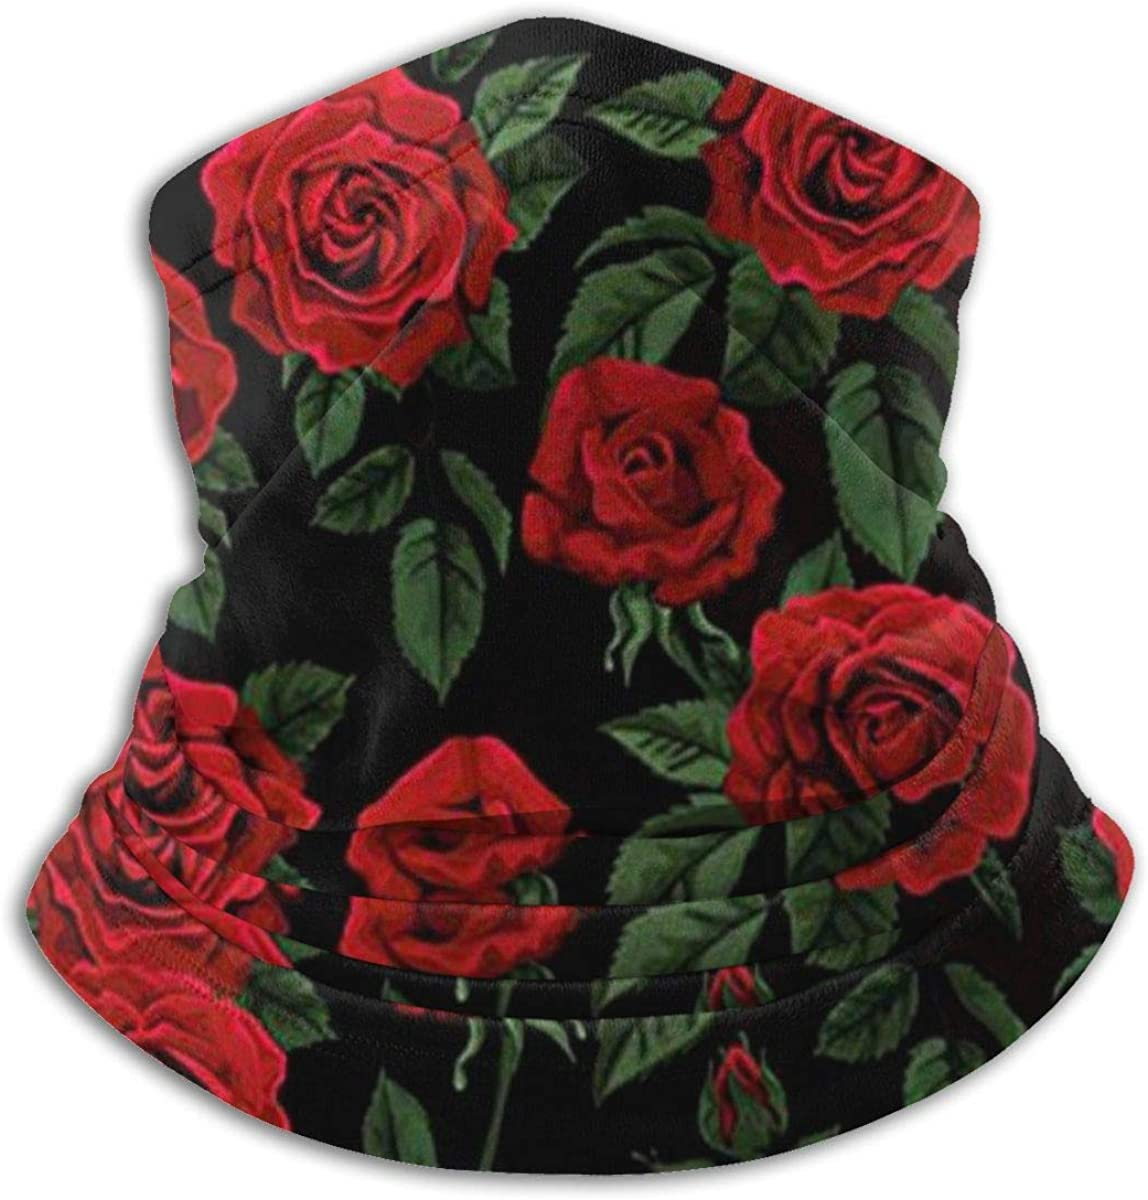 NA Green Black Mask Warm Neck Scarf Outdoor UV Protection Party Cover Men and Women Multi-Function Headdress